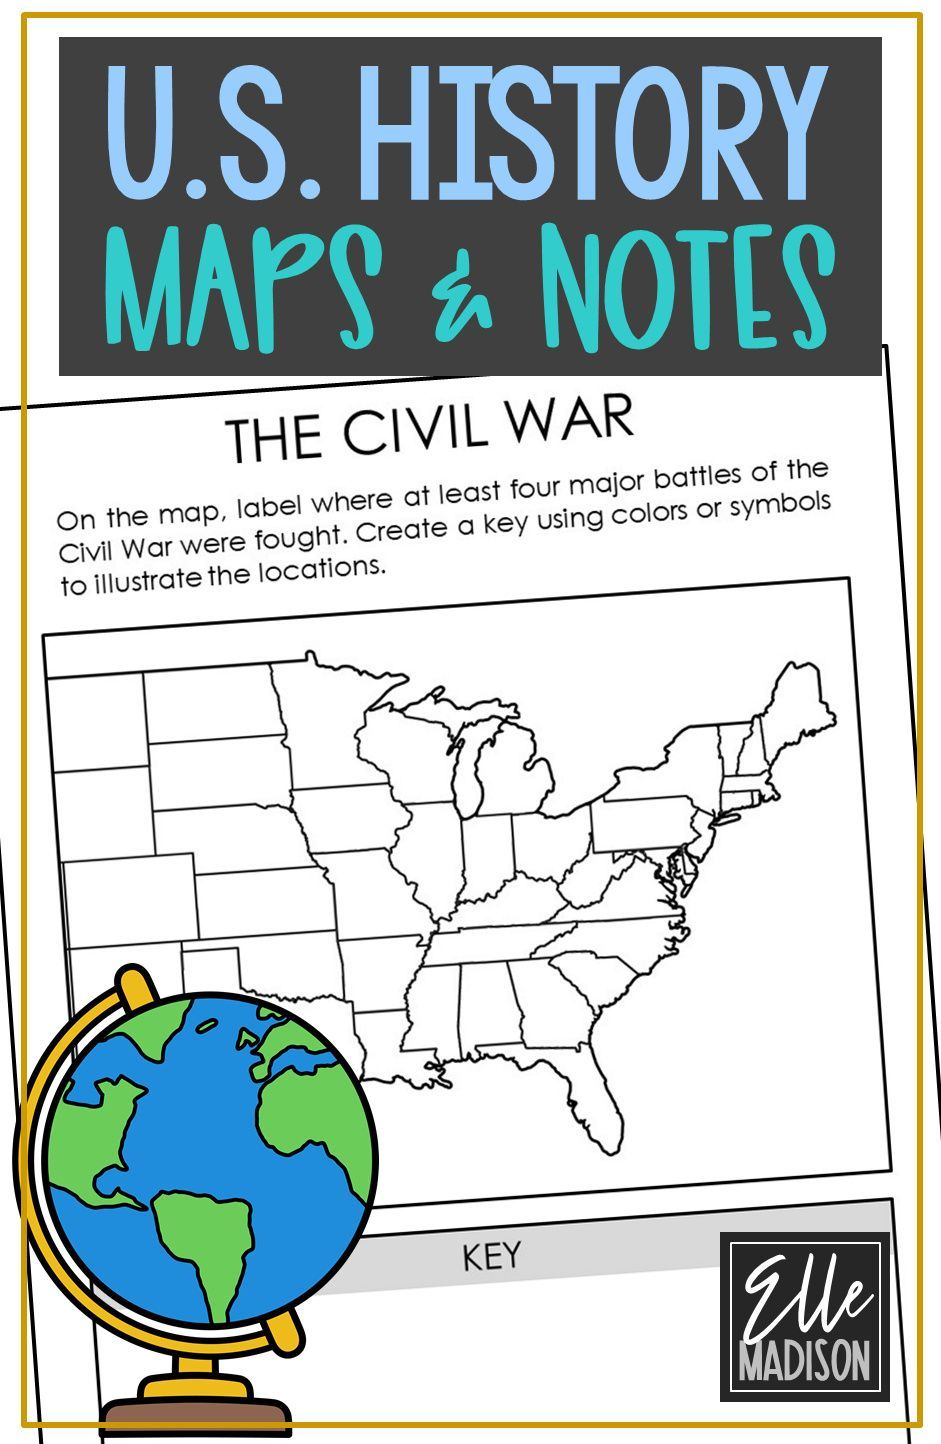 Social Studies Unit Study Us American History Worksheet And Maps Note Pages In 2020 Social Studies Worksheets History Classroom Social Studies